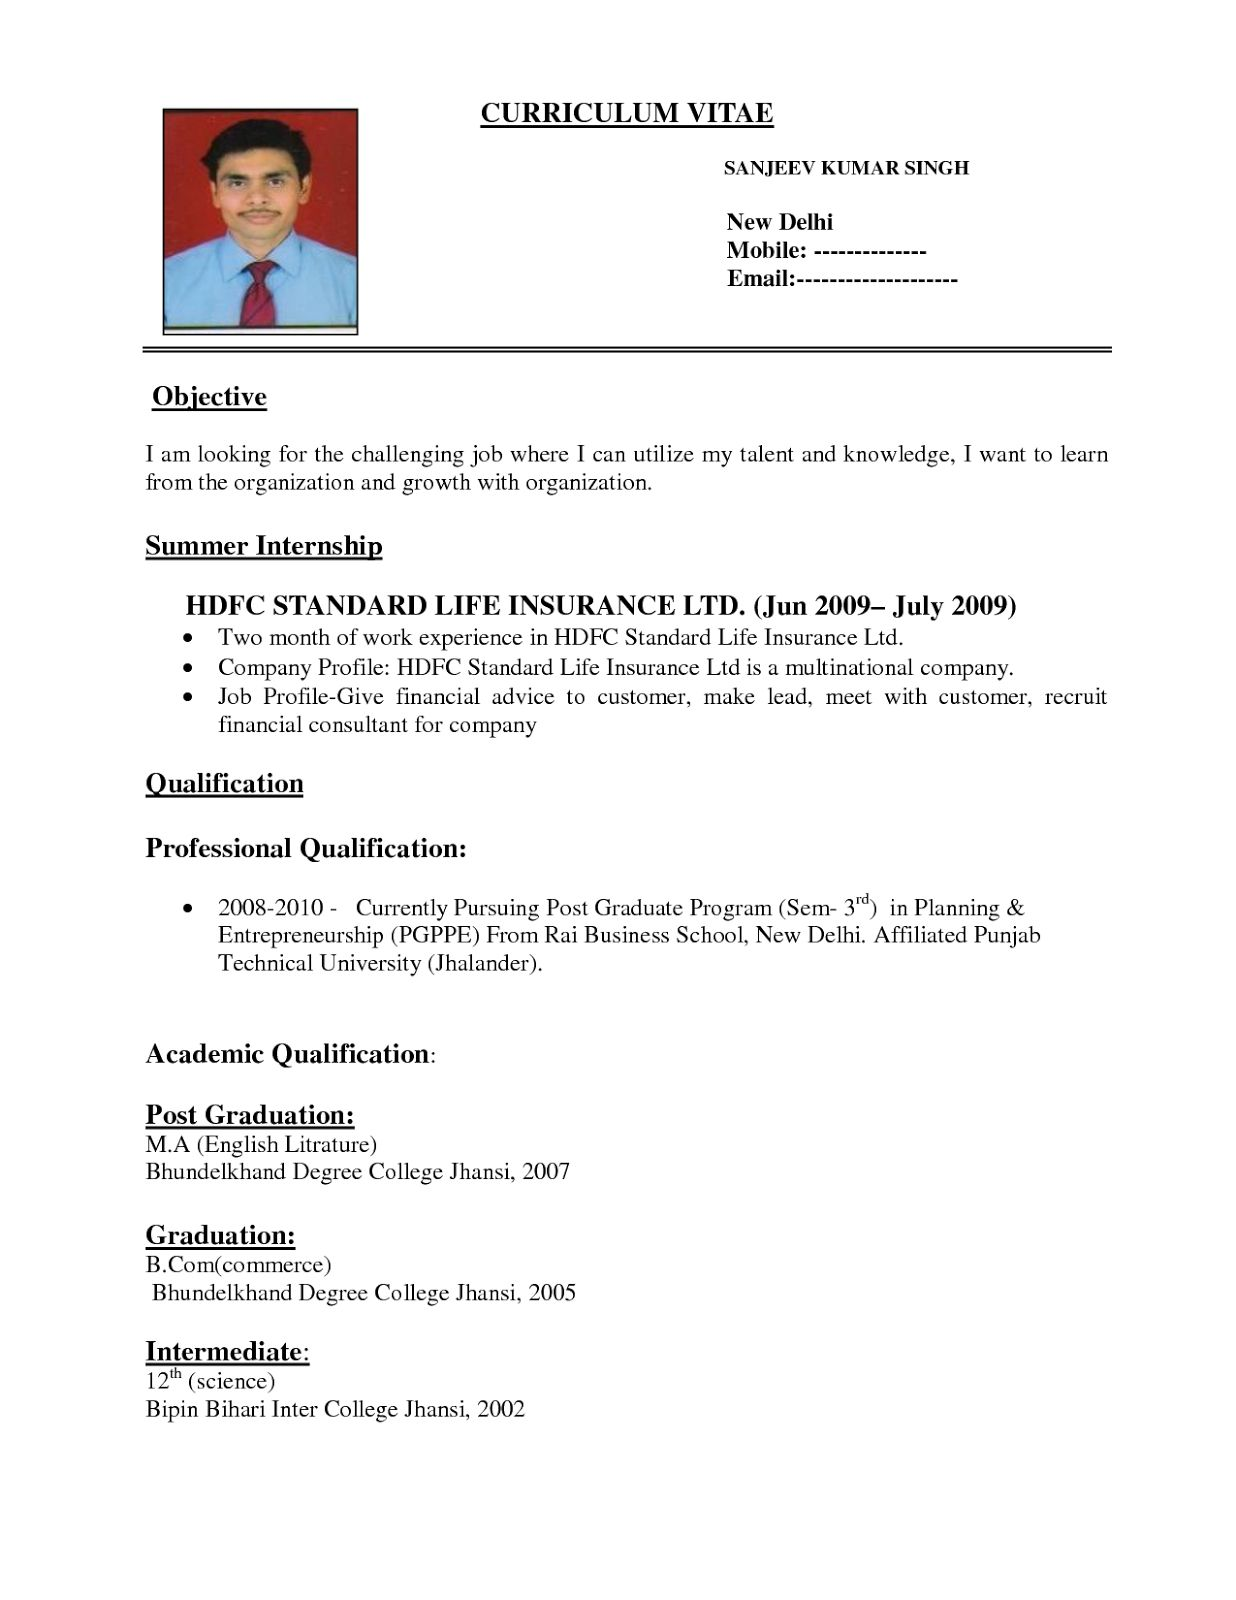 Resume Format For Job Custom Pin By Patricia Johnson On Fashion Stylist Tips And Portafolio